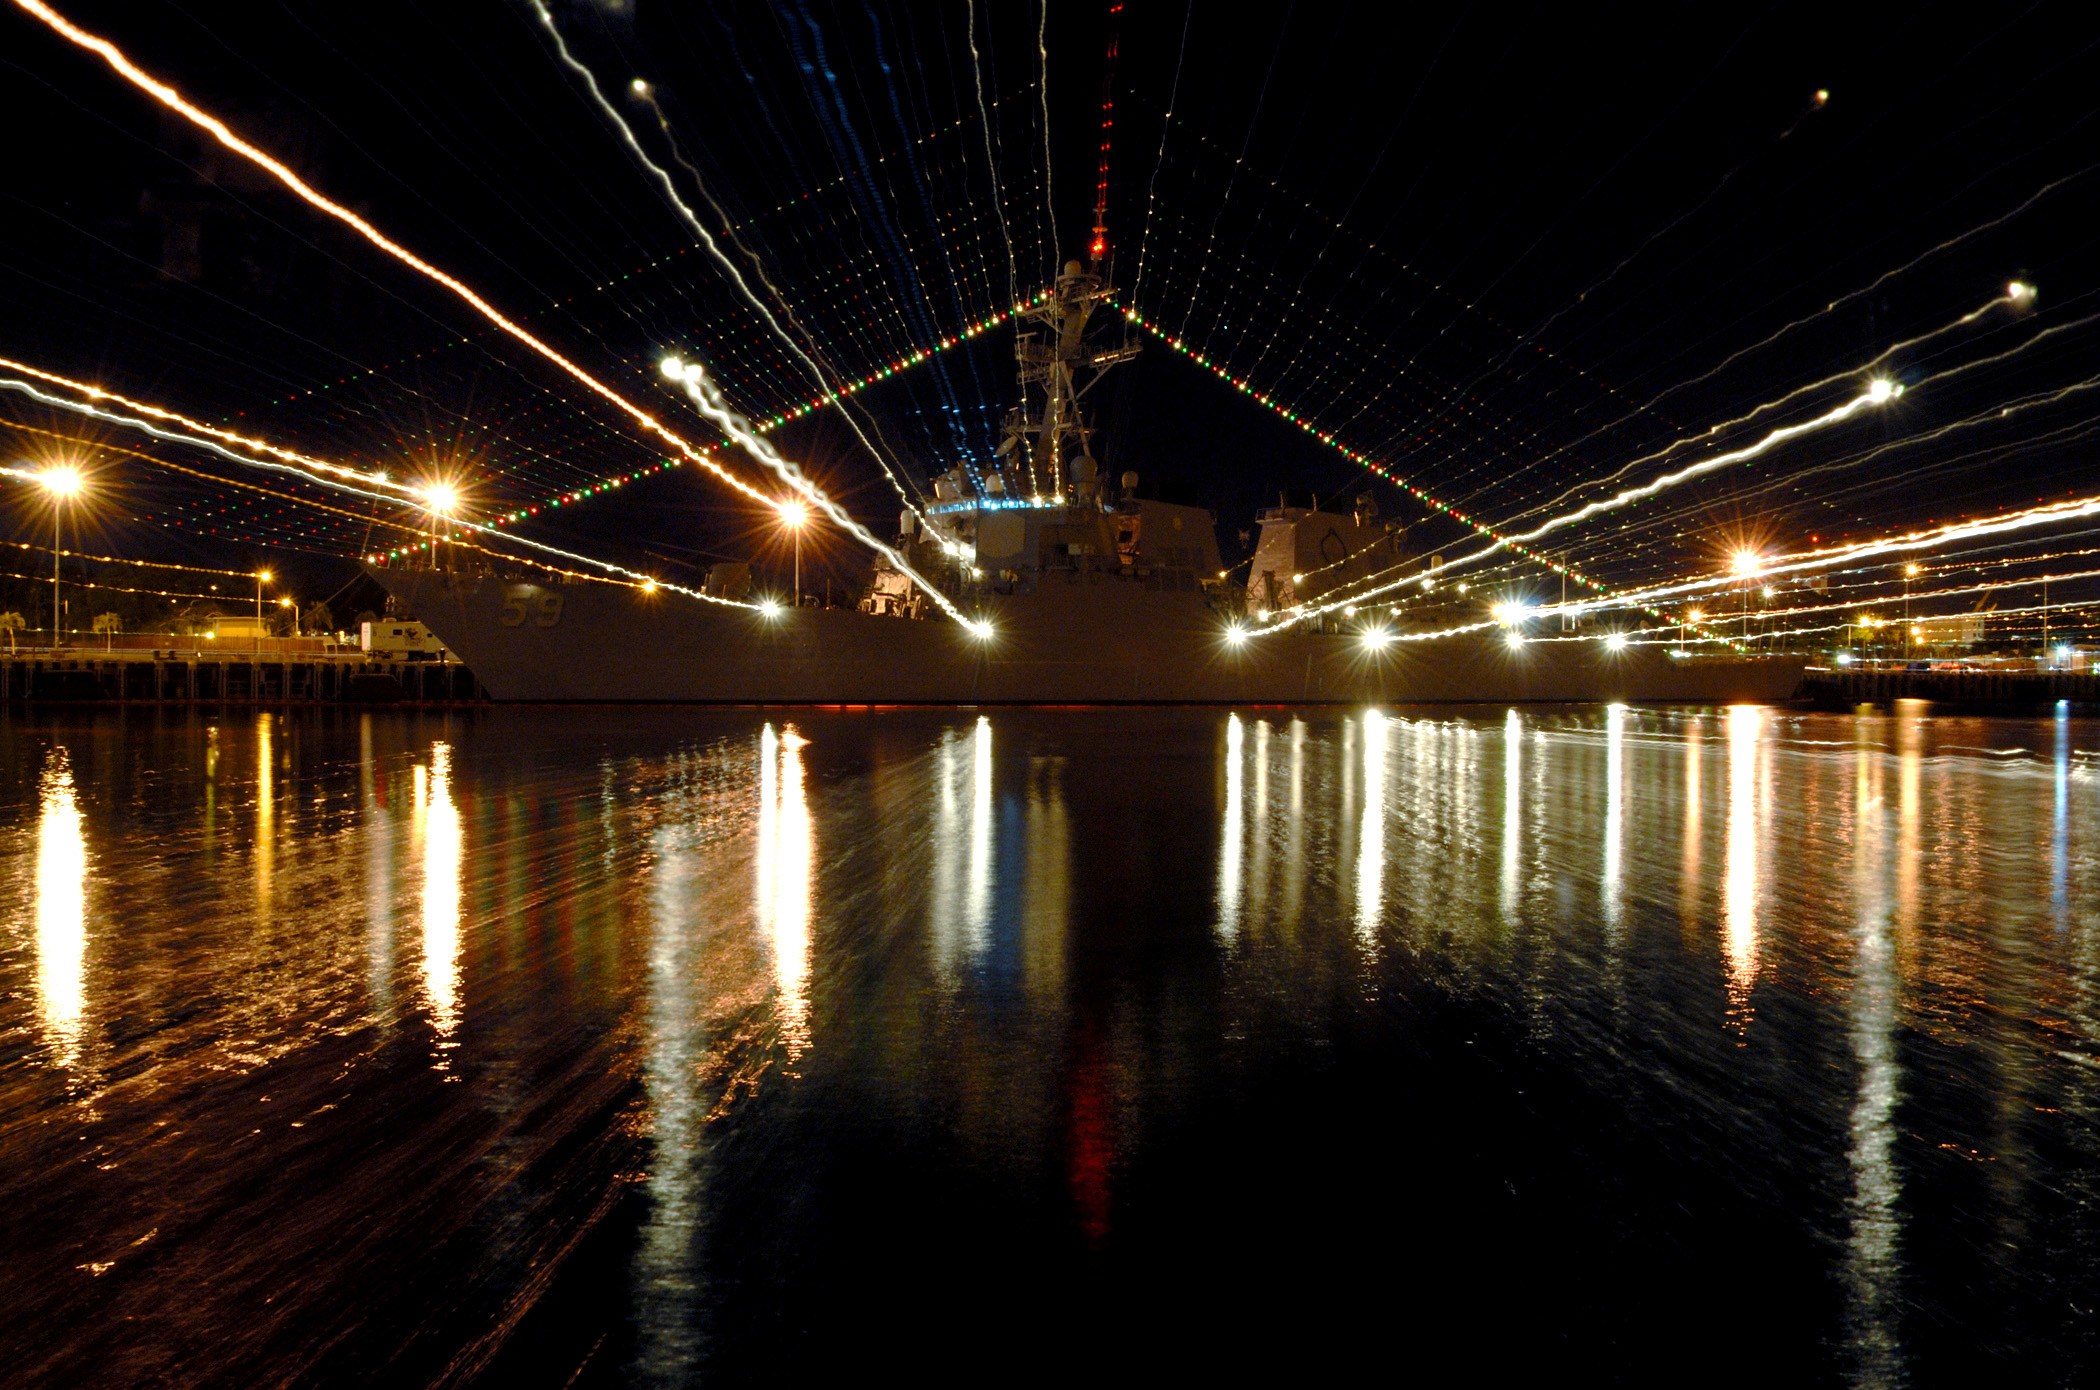 Pearl Harbor Lights (US Navy photo)